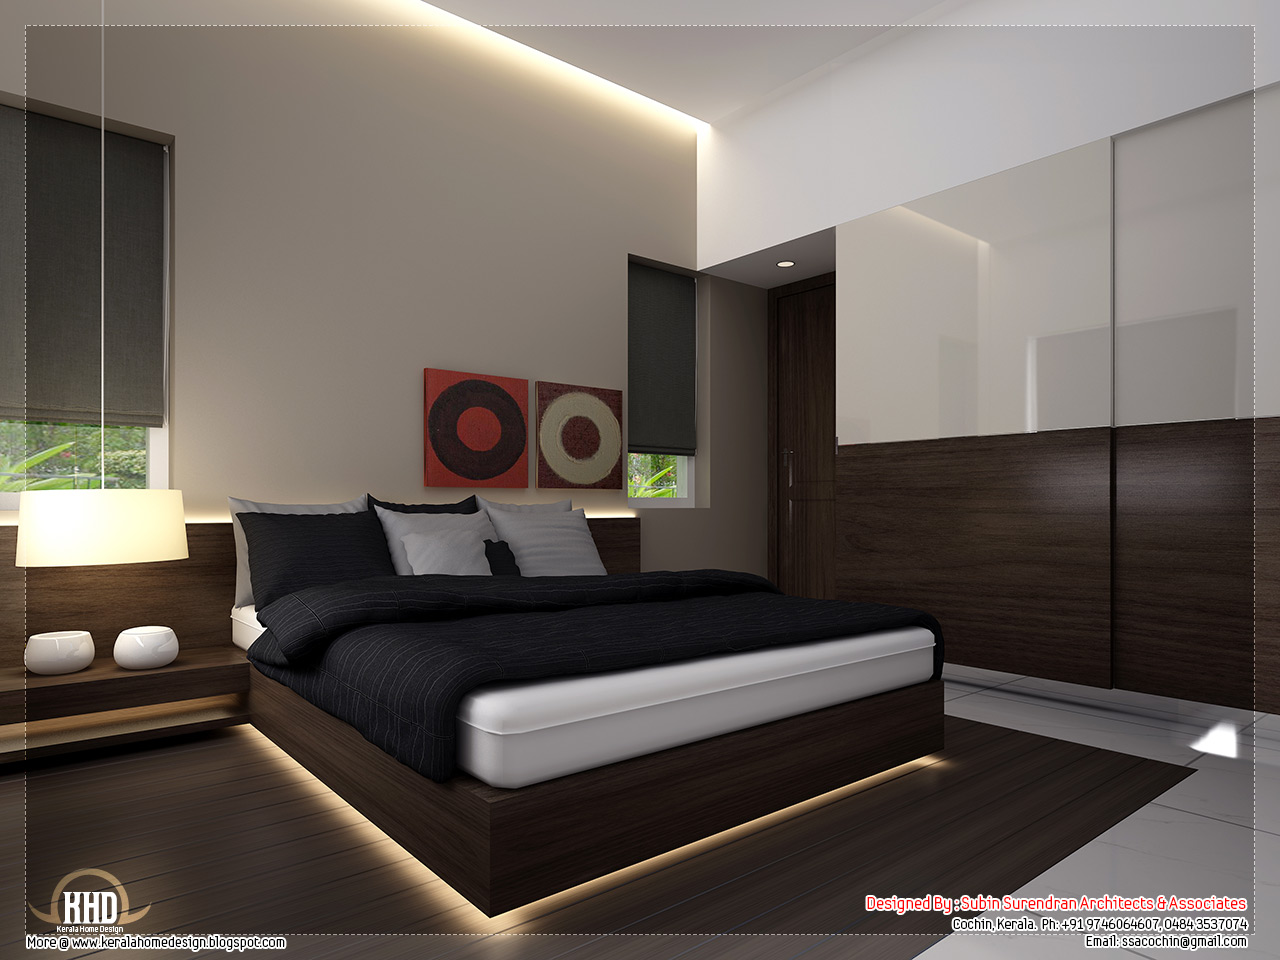 28+ [ bedroom interior ] | bedroom interior design ideas,bedroom